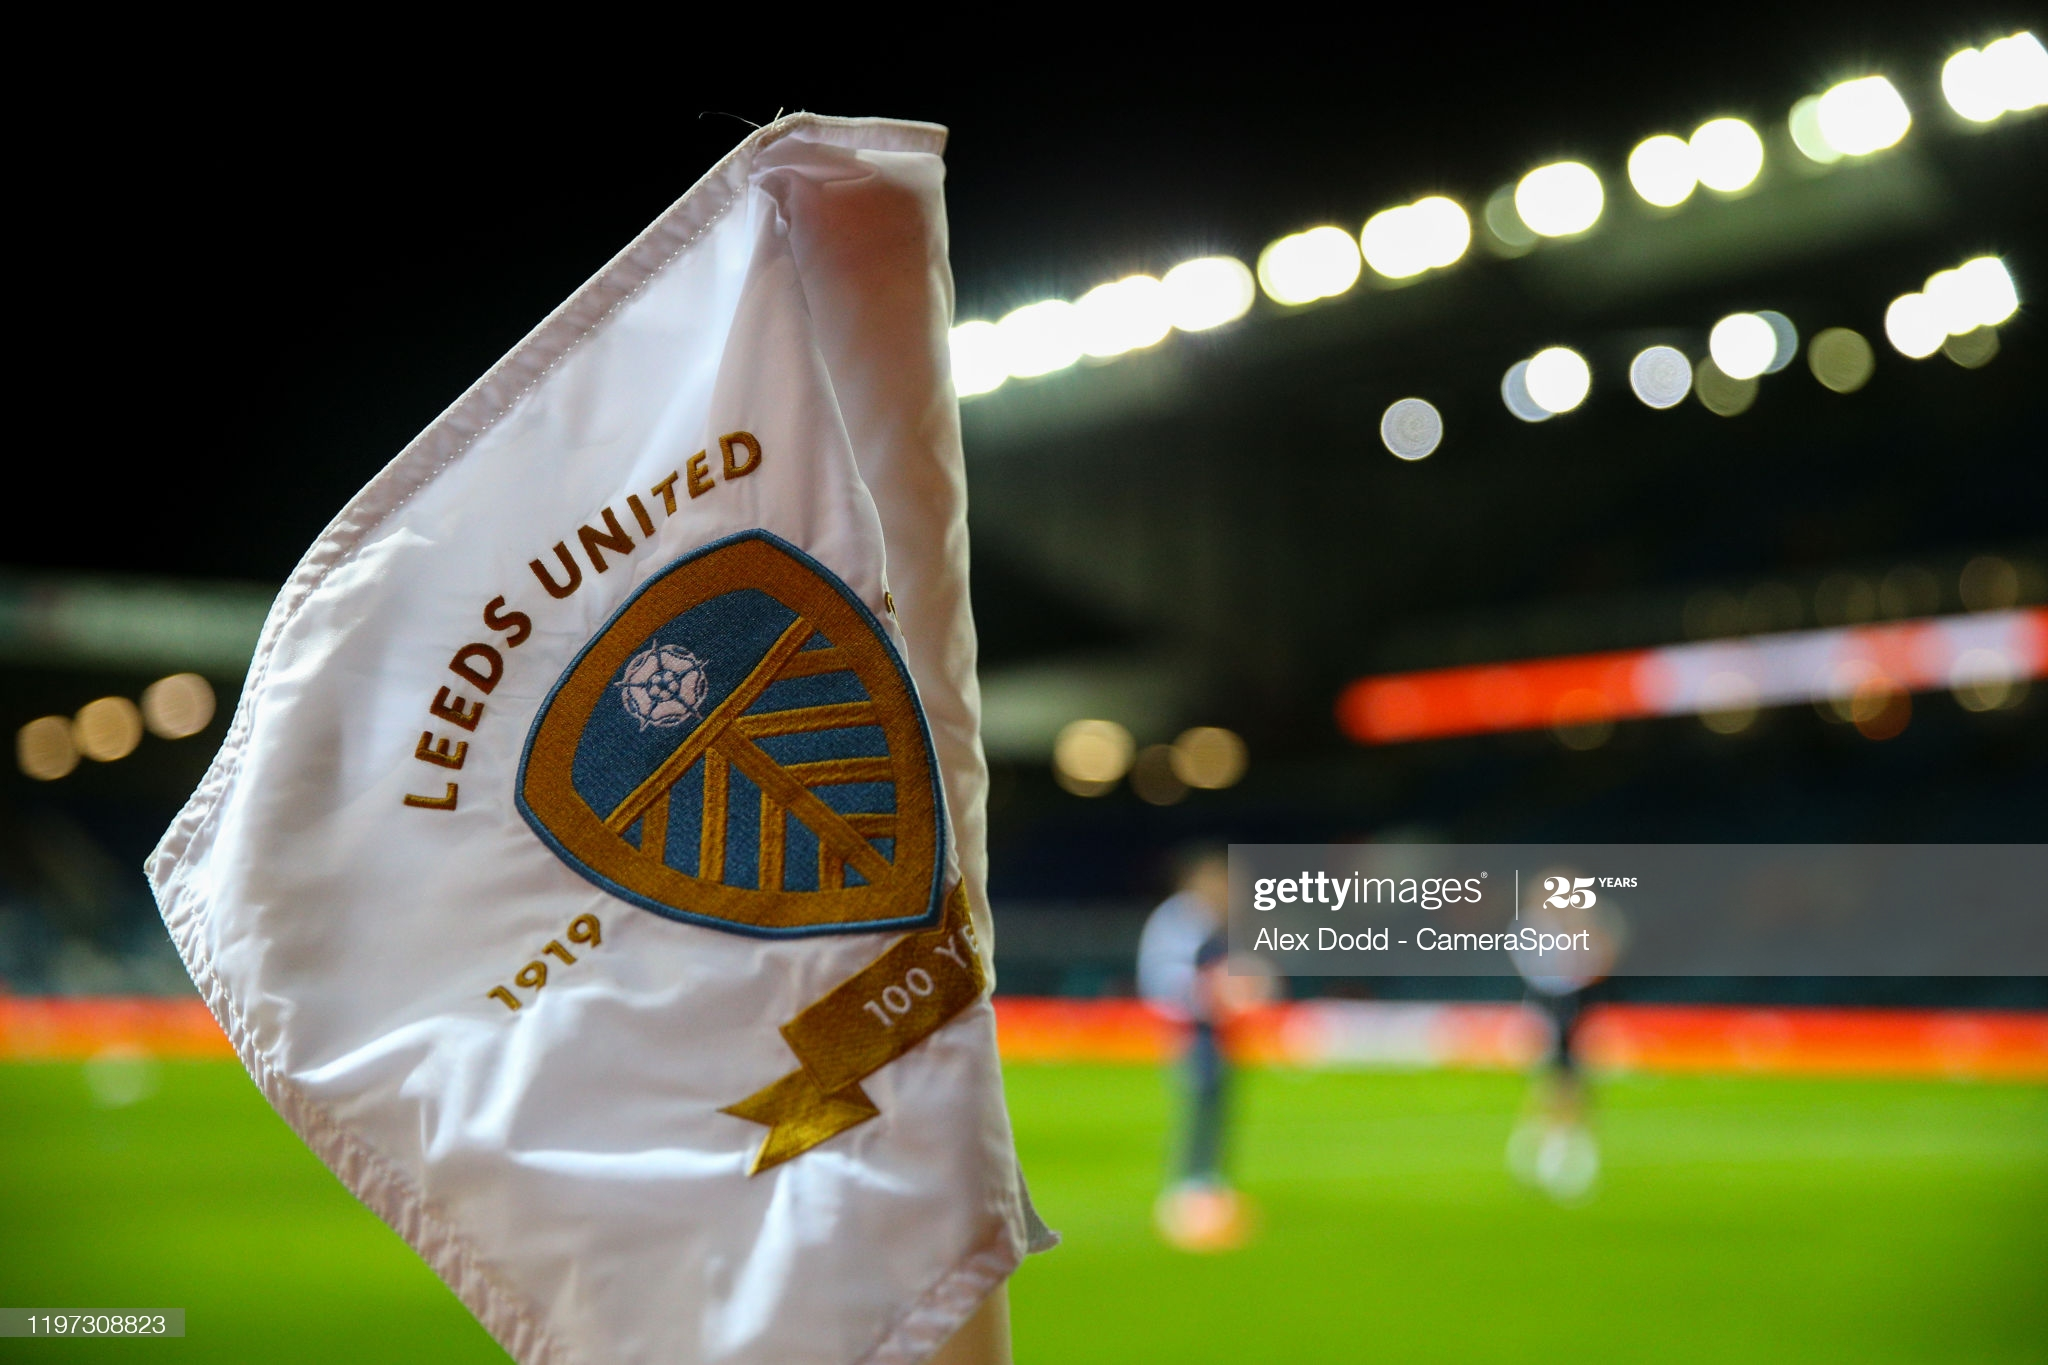 LEEDS, ENGLAND - JANUARY 28: A general view of Elland Road, home of Leeds United during the Sky Bet Championship match between Leeds United and Millwall at Elland Road on January 28, 2020 in Leeds, England. (Photo by Alex Dodd - CameraSport via Getty Images)